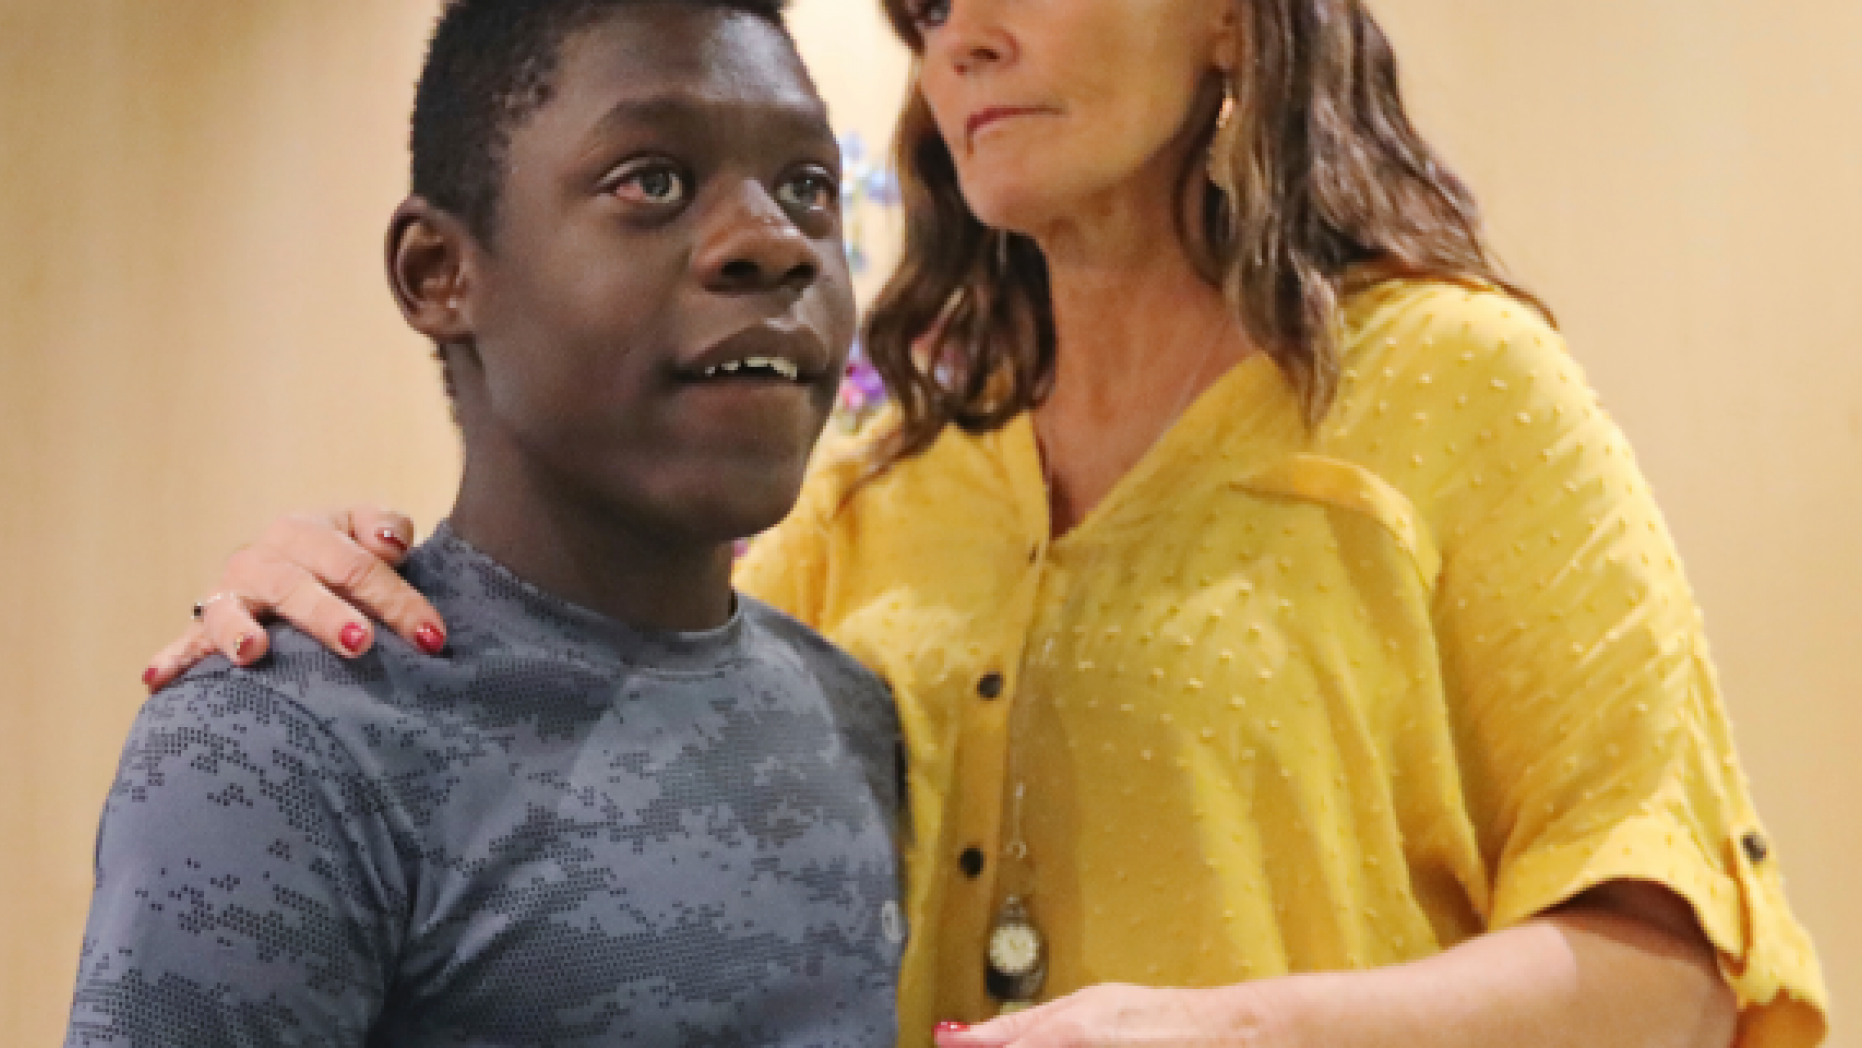 Jerri Hrubes stands next to her son DJ during a news conference Friday, June 7, 2019, in Salt Lake City <a class=